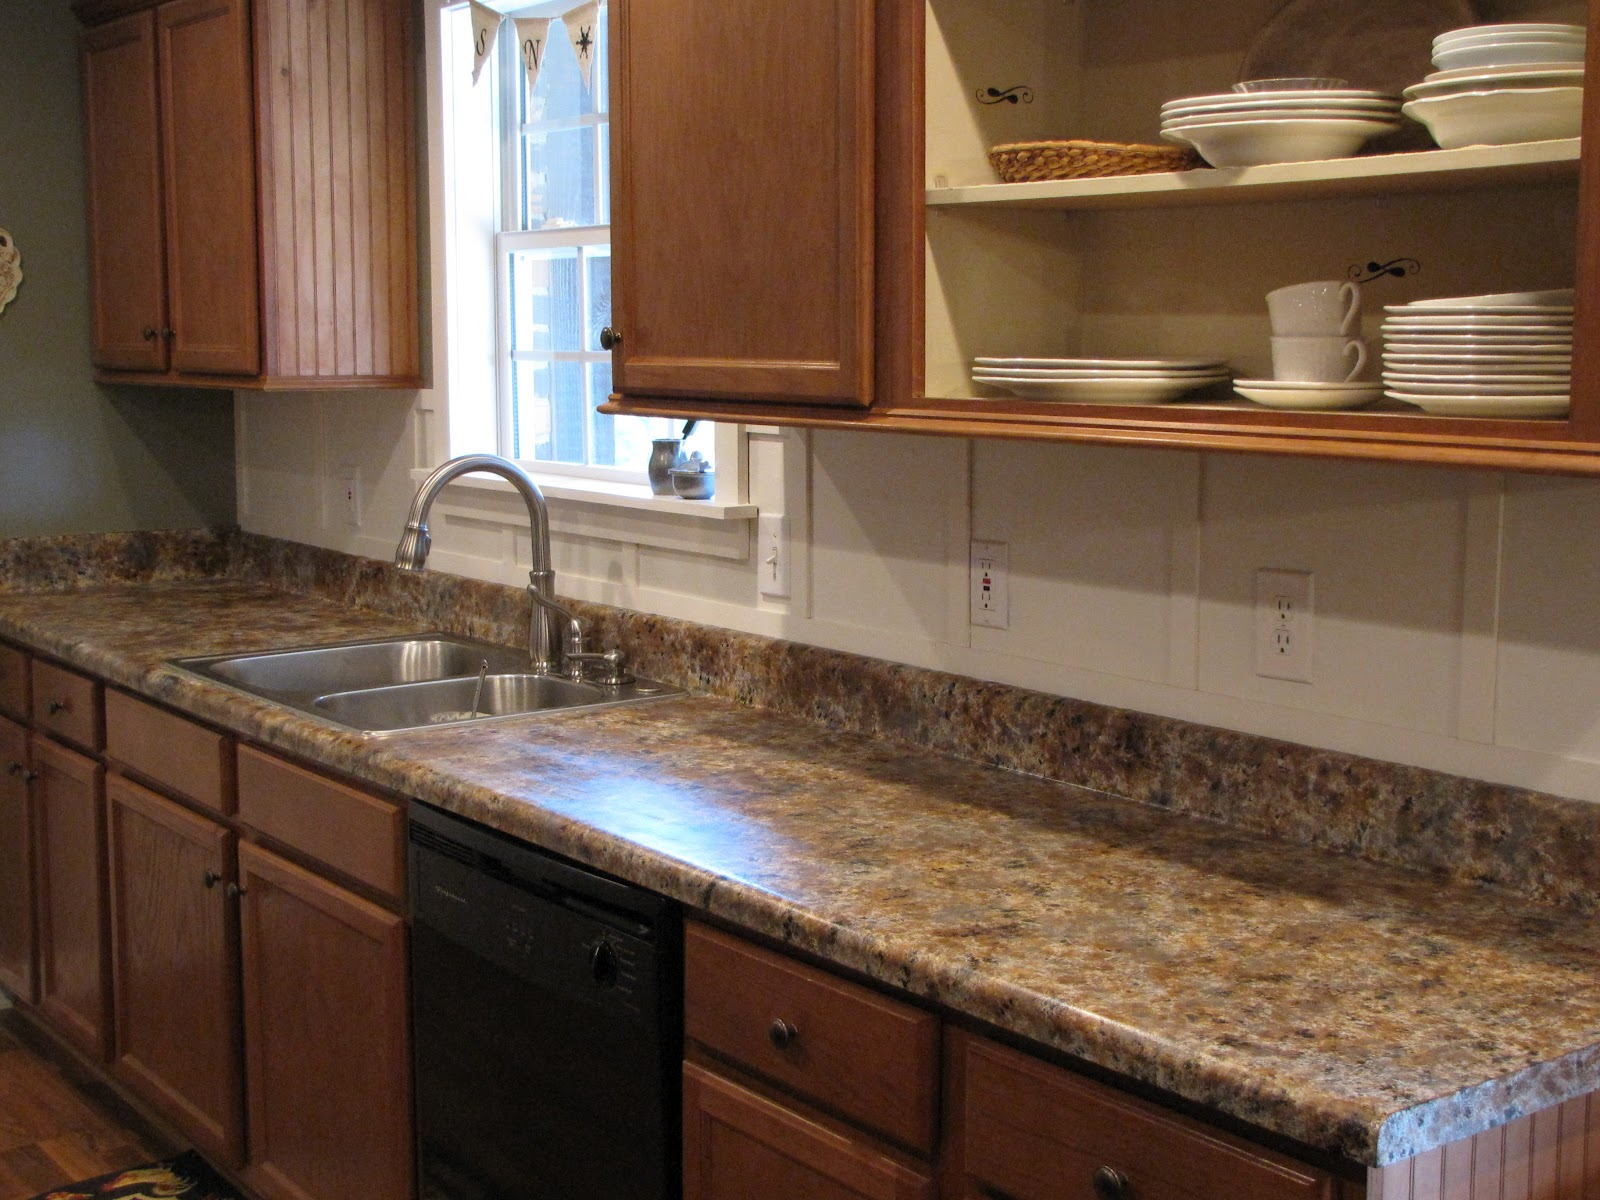 Painting laminate countertops in the kitchen for Kitchen countertops